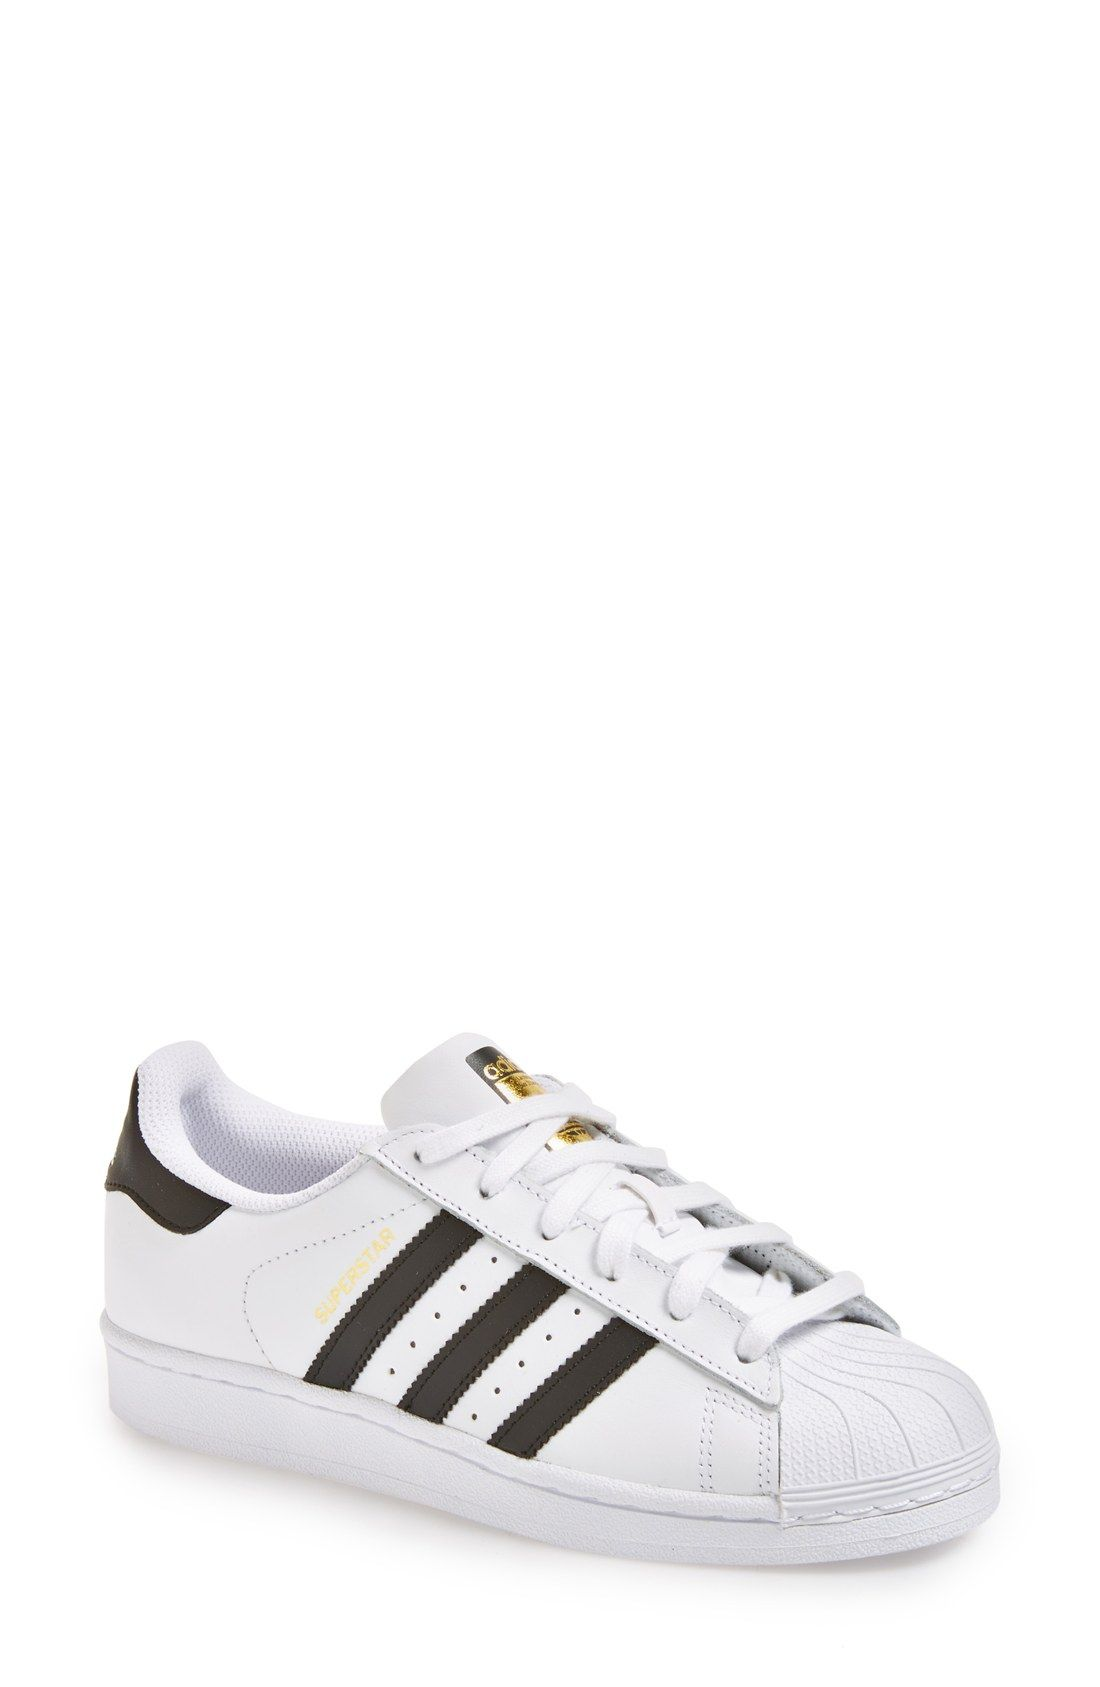 adidas  Superstar  Sneaker (Women)   I want...   Pinterest ... e3ed4833b968